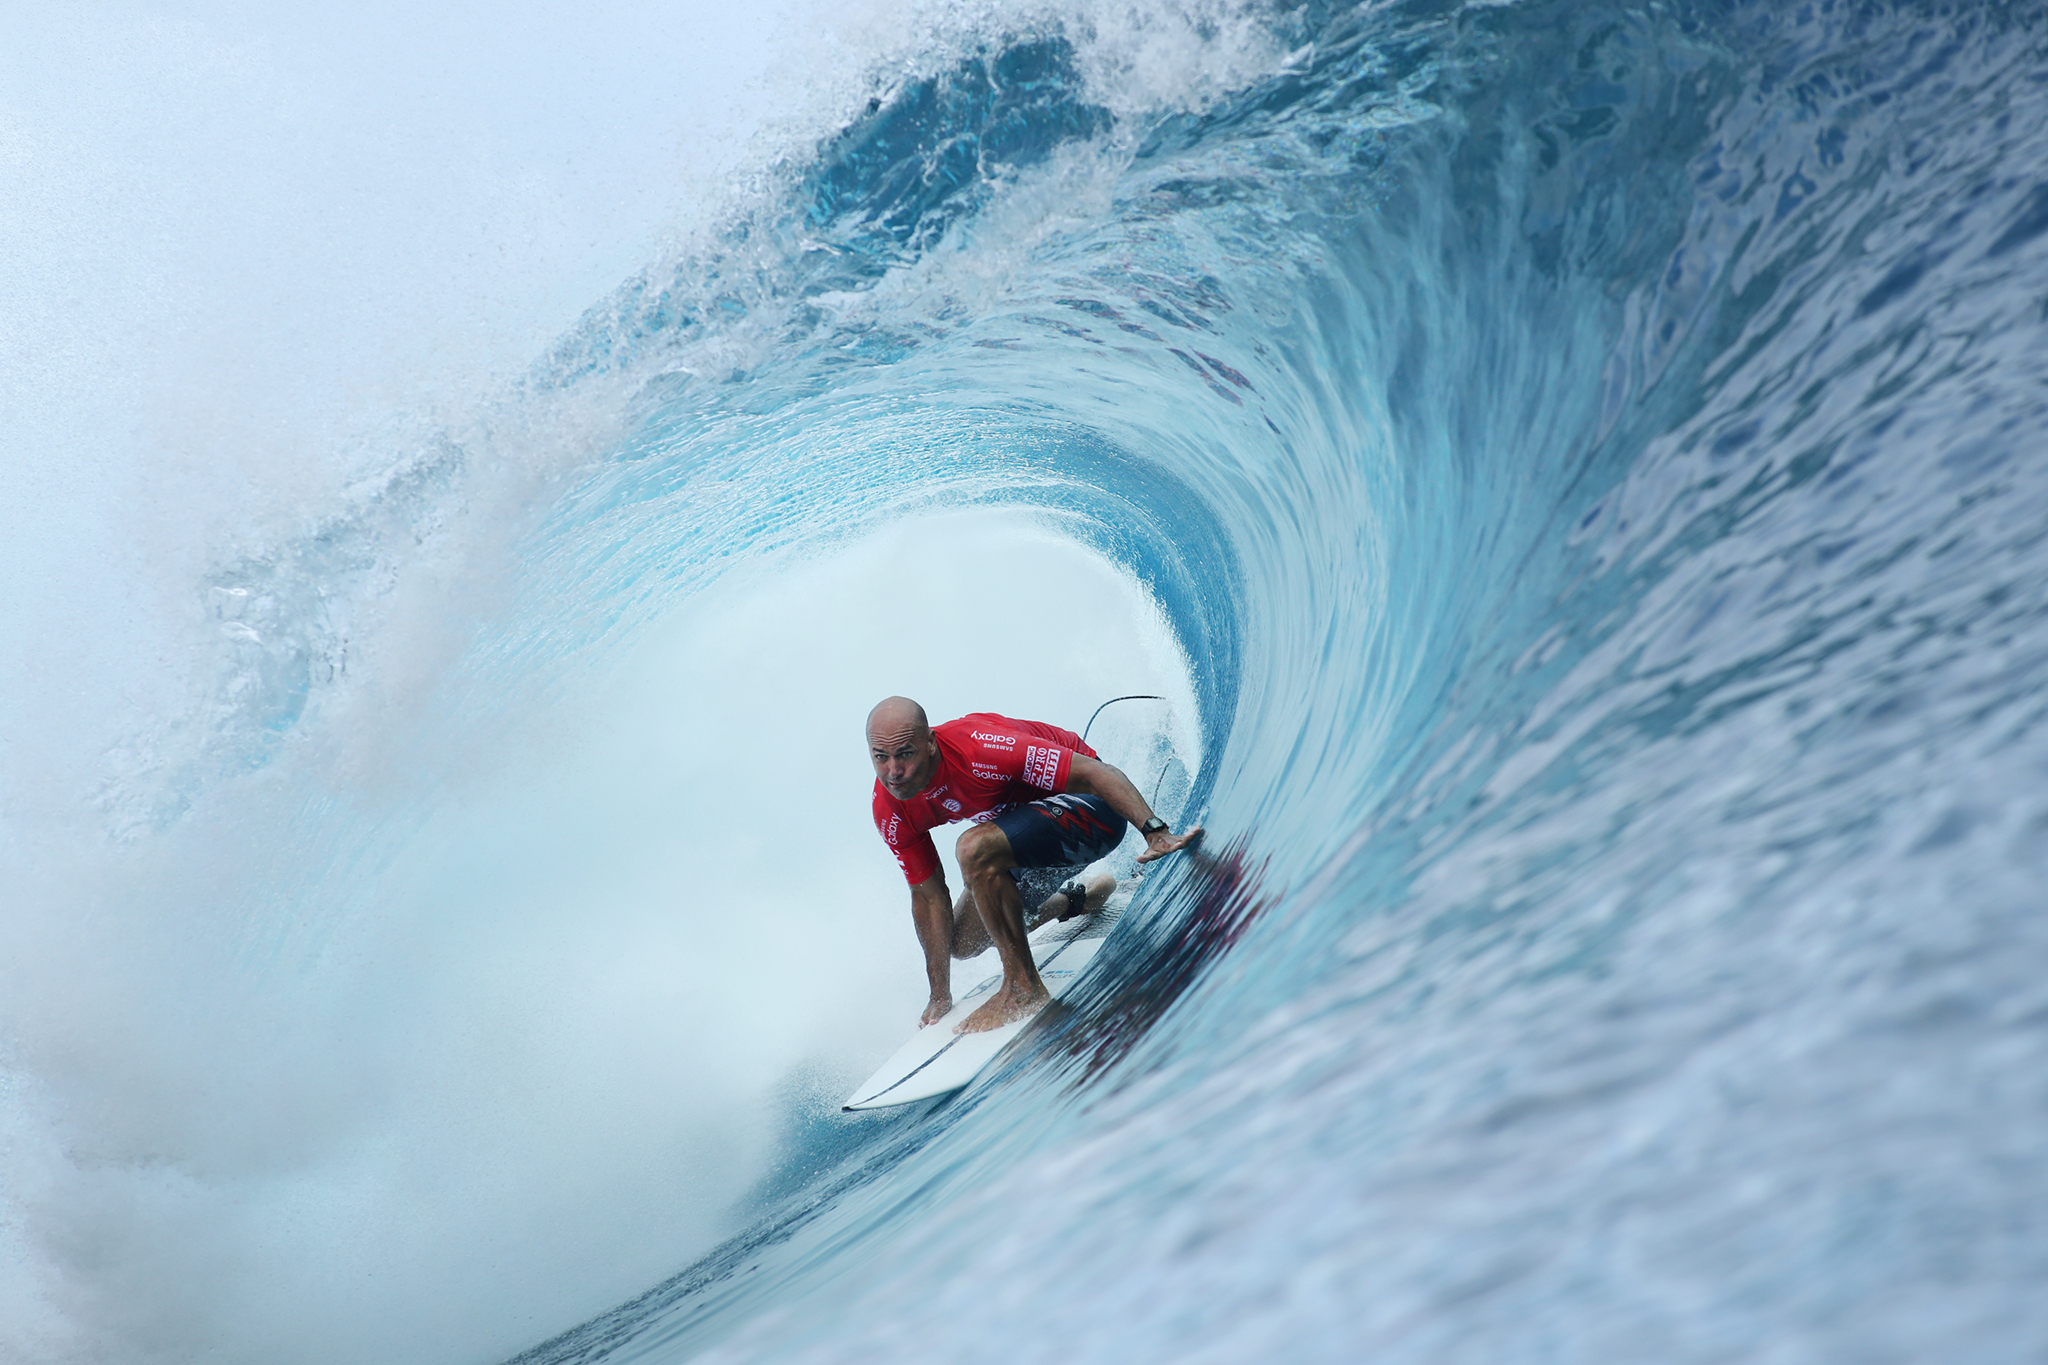 Kelly Slater of the USA (pictured) winning  the Billabong Pro Tahiti on Tuesday August 23, 2016.  PHOTO: @wsl/ Cestari SOCIAL: @wsl @kc80 This image is the copyright of  the World Surf League and is provided royalty free for editorial use only, in all media now known or hereafter created. No commercial rights granted. Sale or license of the images is prohibited. This image is a factually accurate rendering of what it depicts and has not been modified or augmented except for standard cropping and toning. ALL RIGHTS RESERVED.